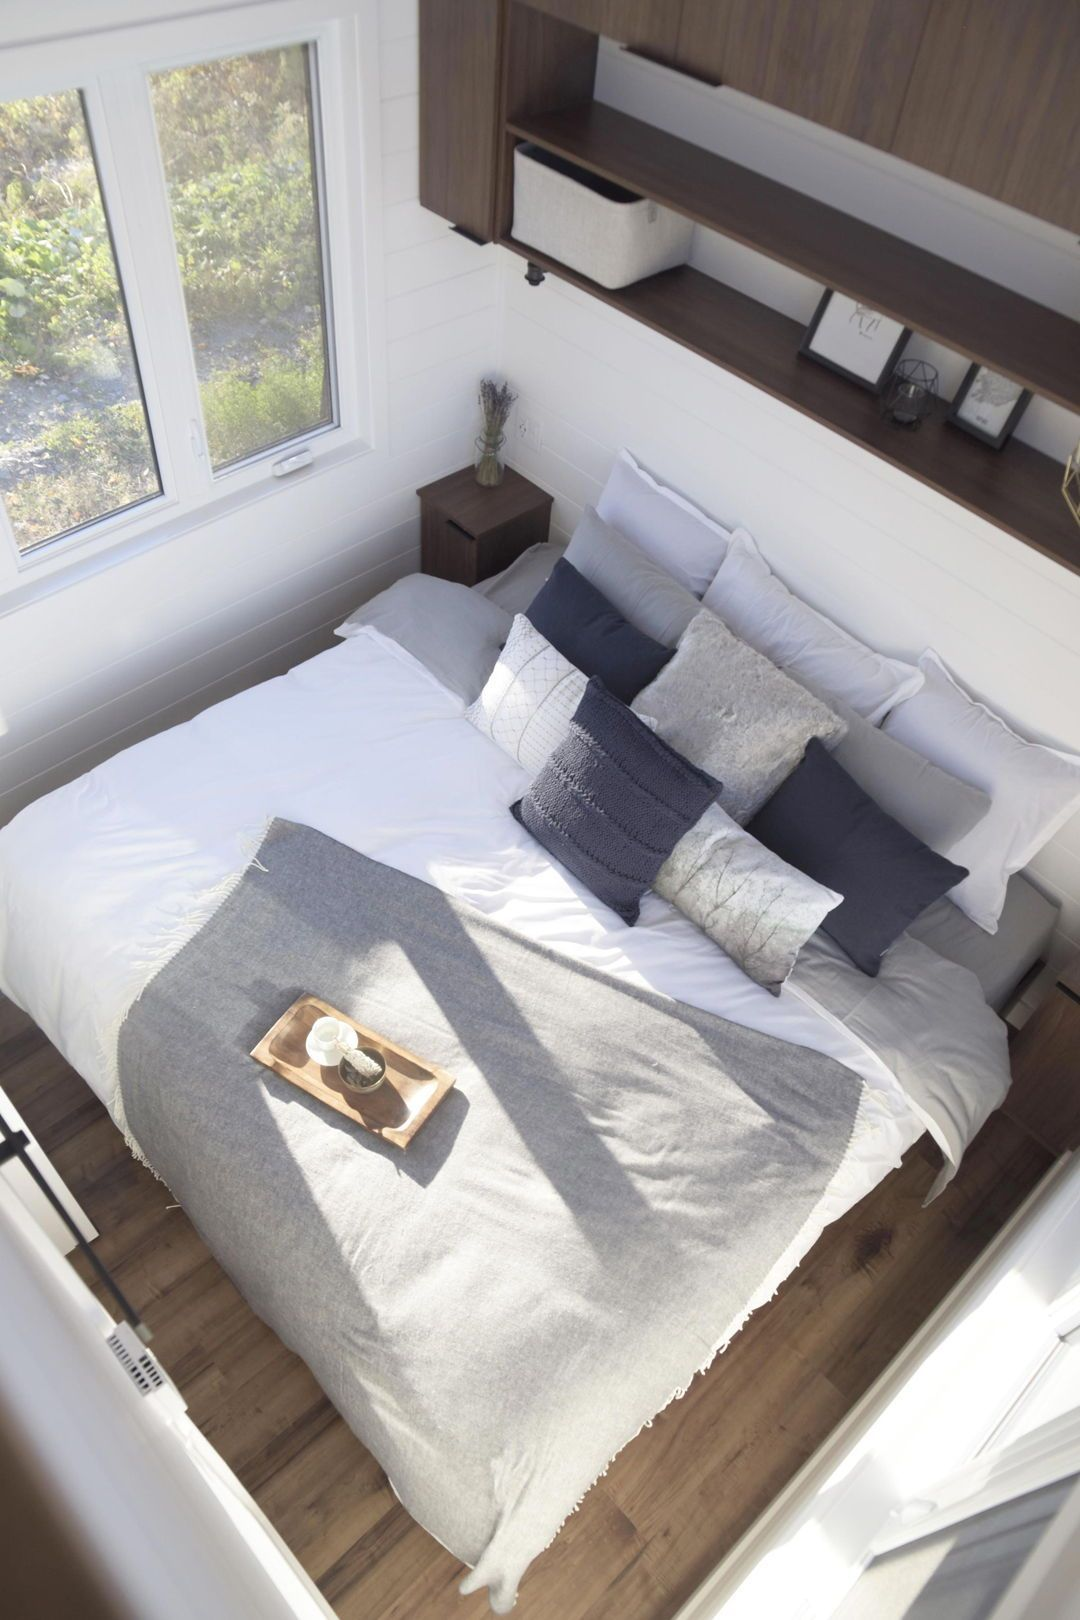 As With The Laurier Model At The Rear Of The Magnolia Is The Main Floor Master Bedroom With In 2020 Master Bedroom Layout Large Master Bedroom Ideas Small Room Design